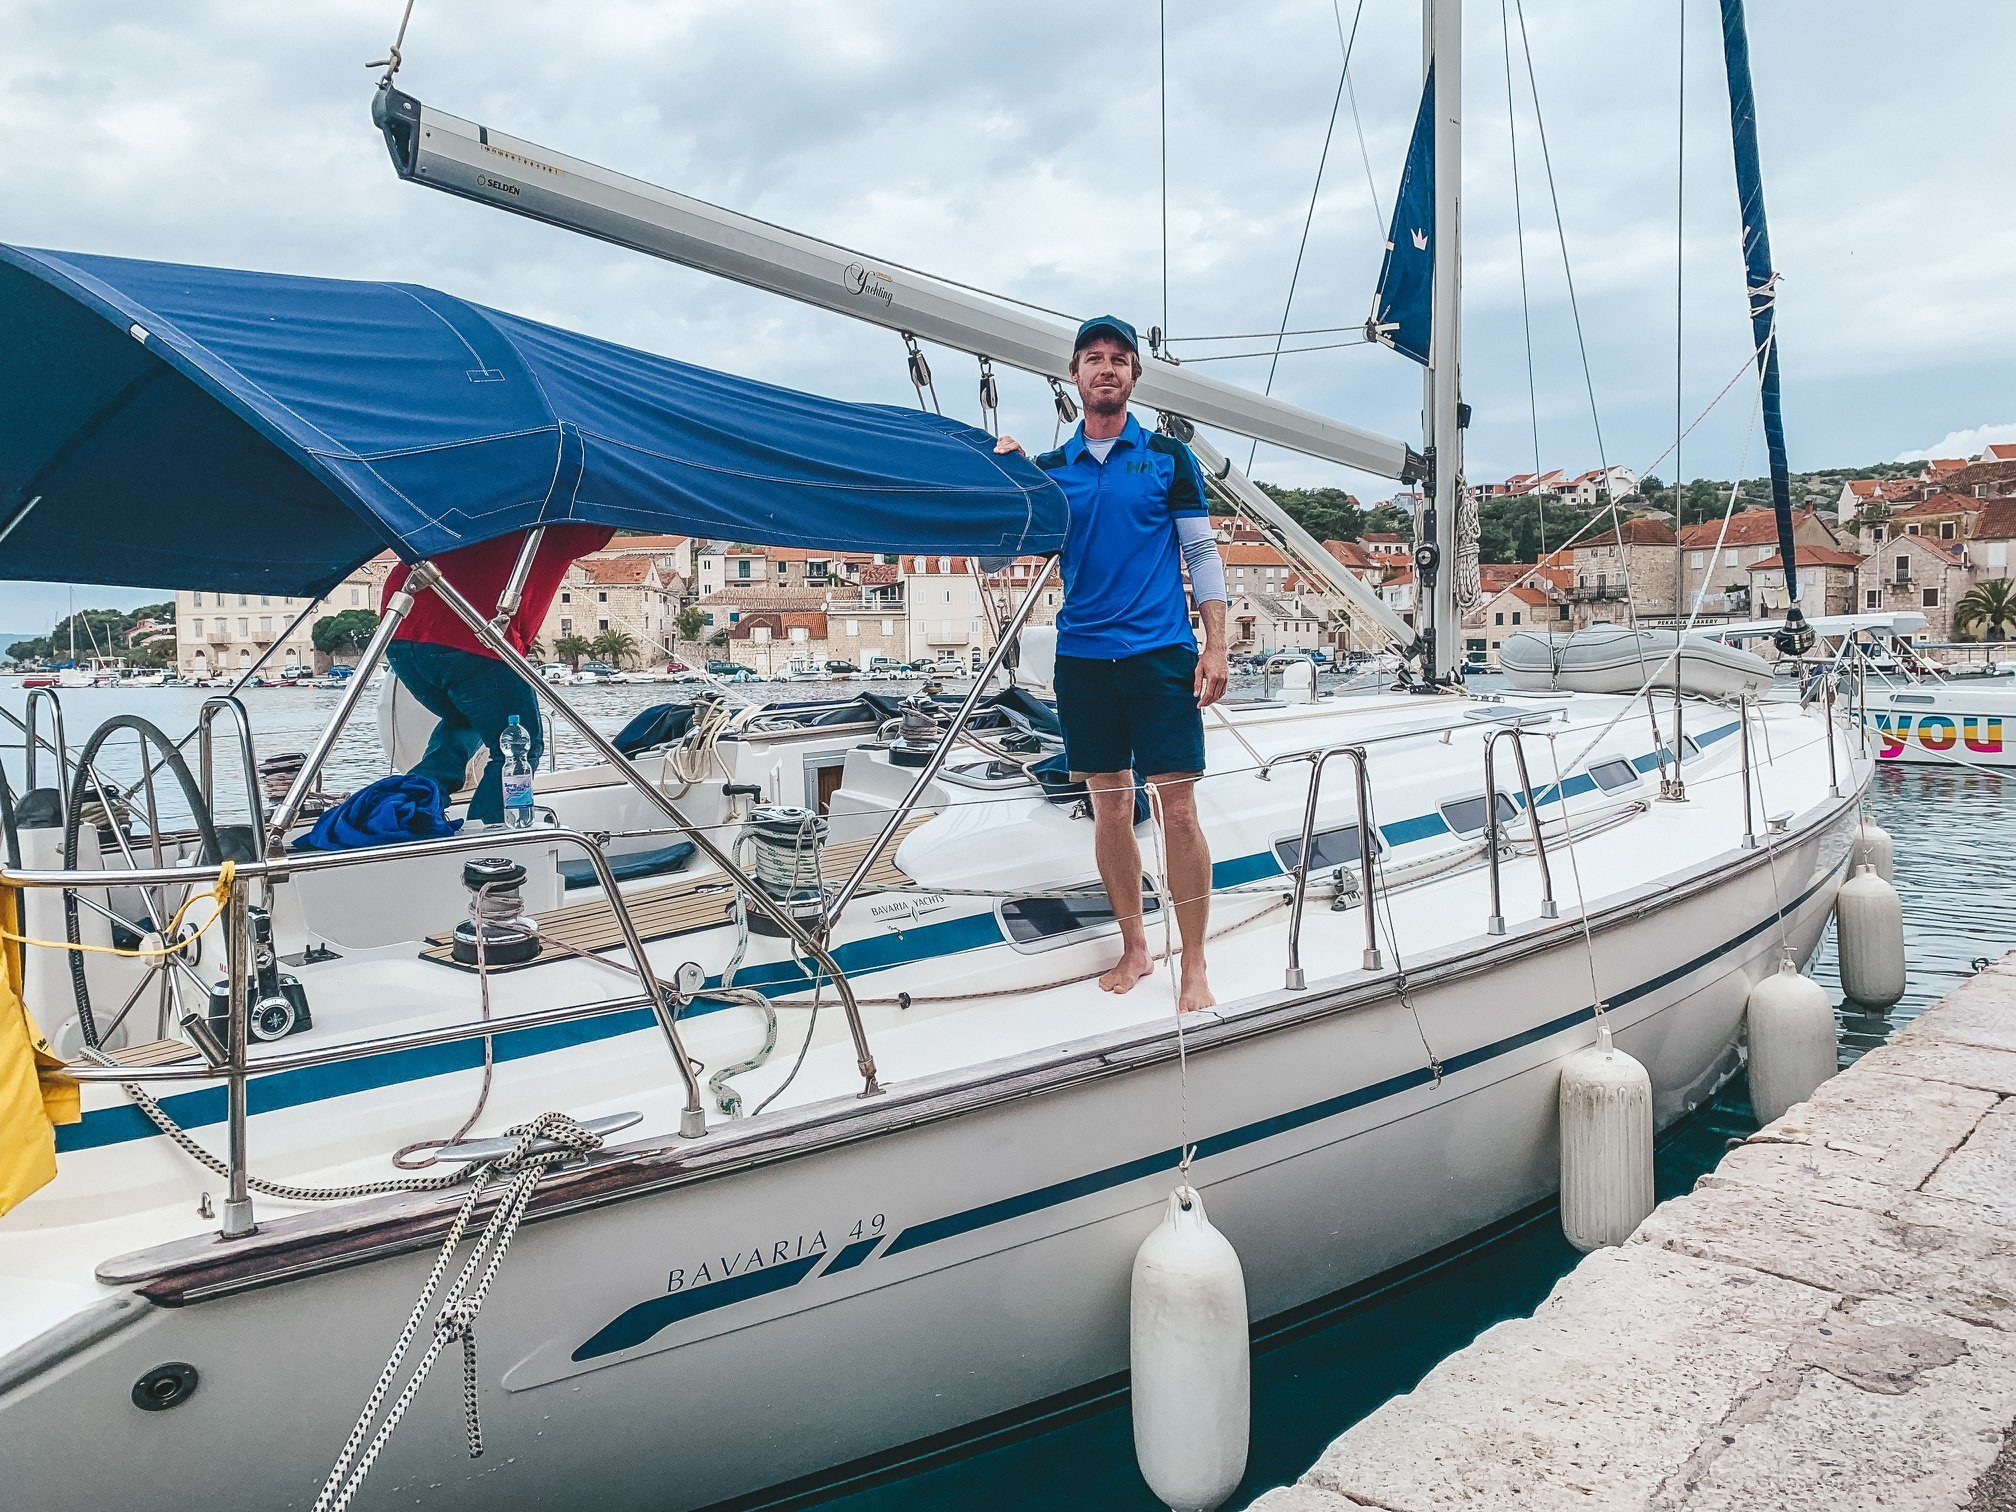 8 Ideal Types of Sailing Gifts that are Suitable for Men